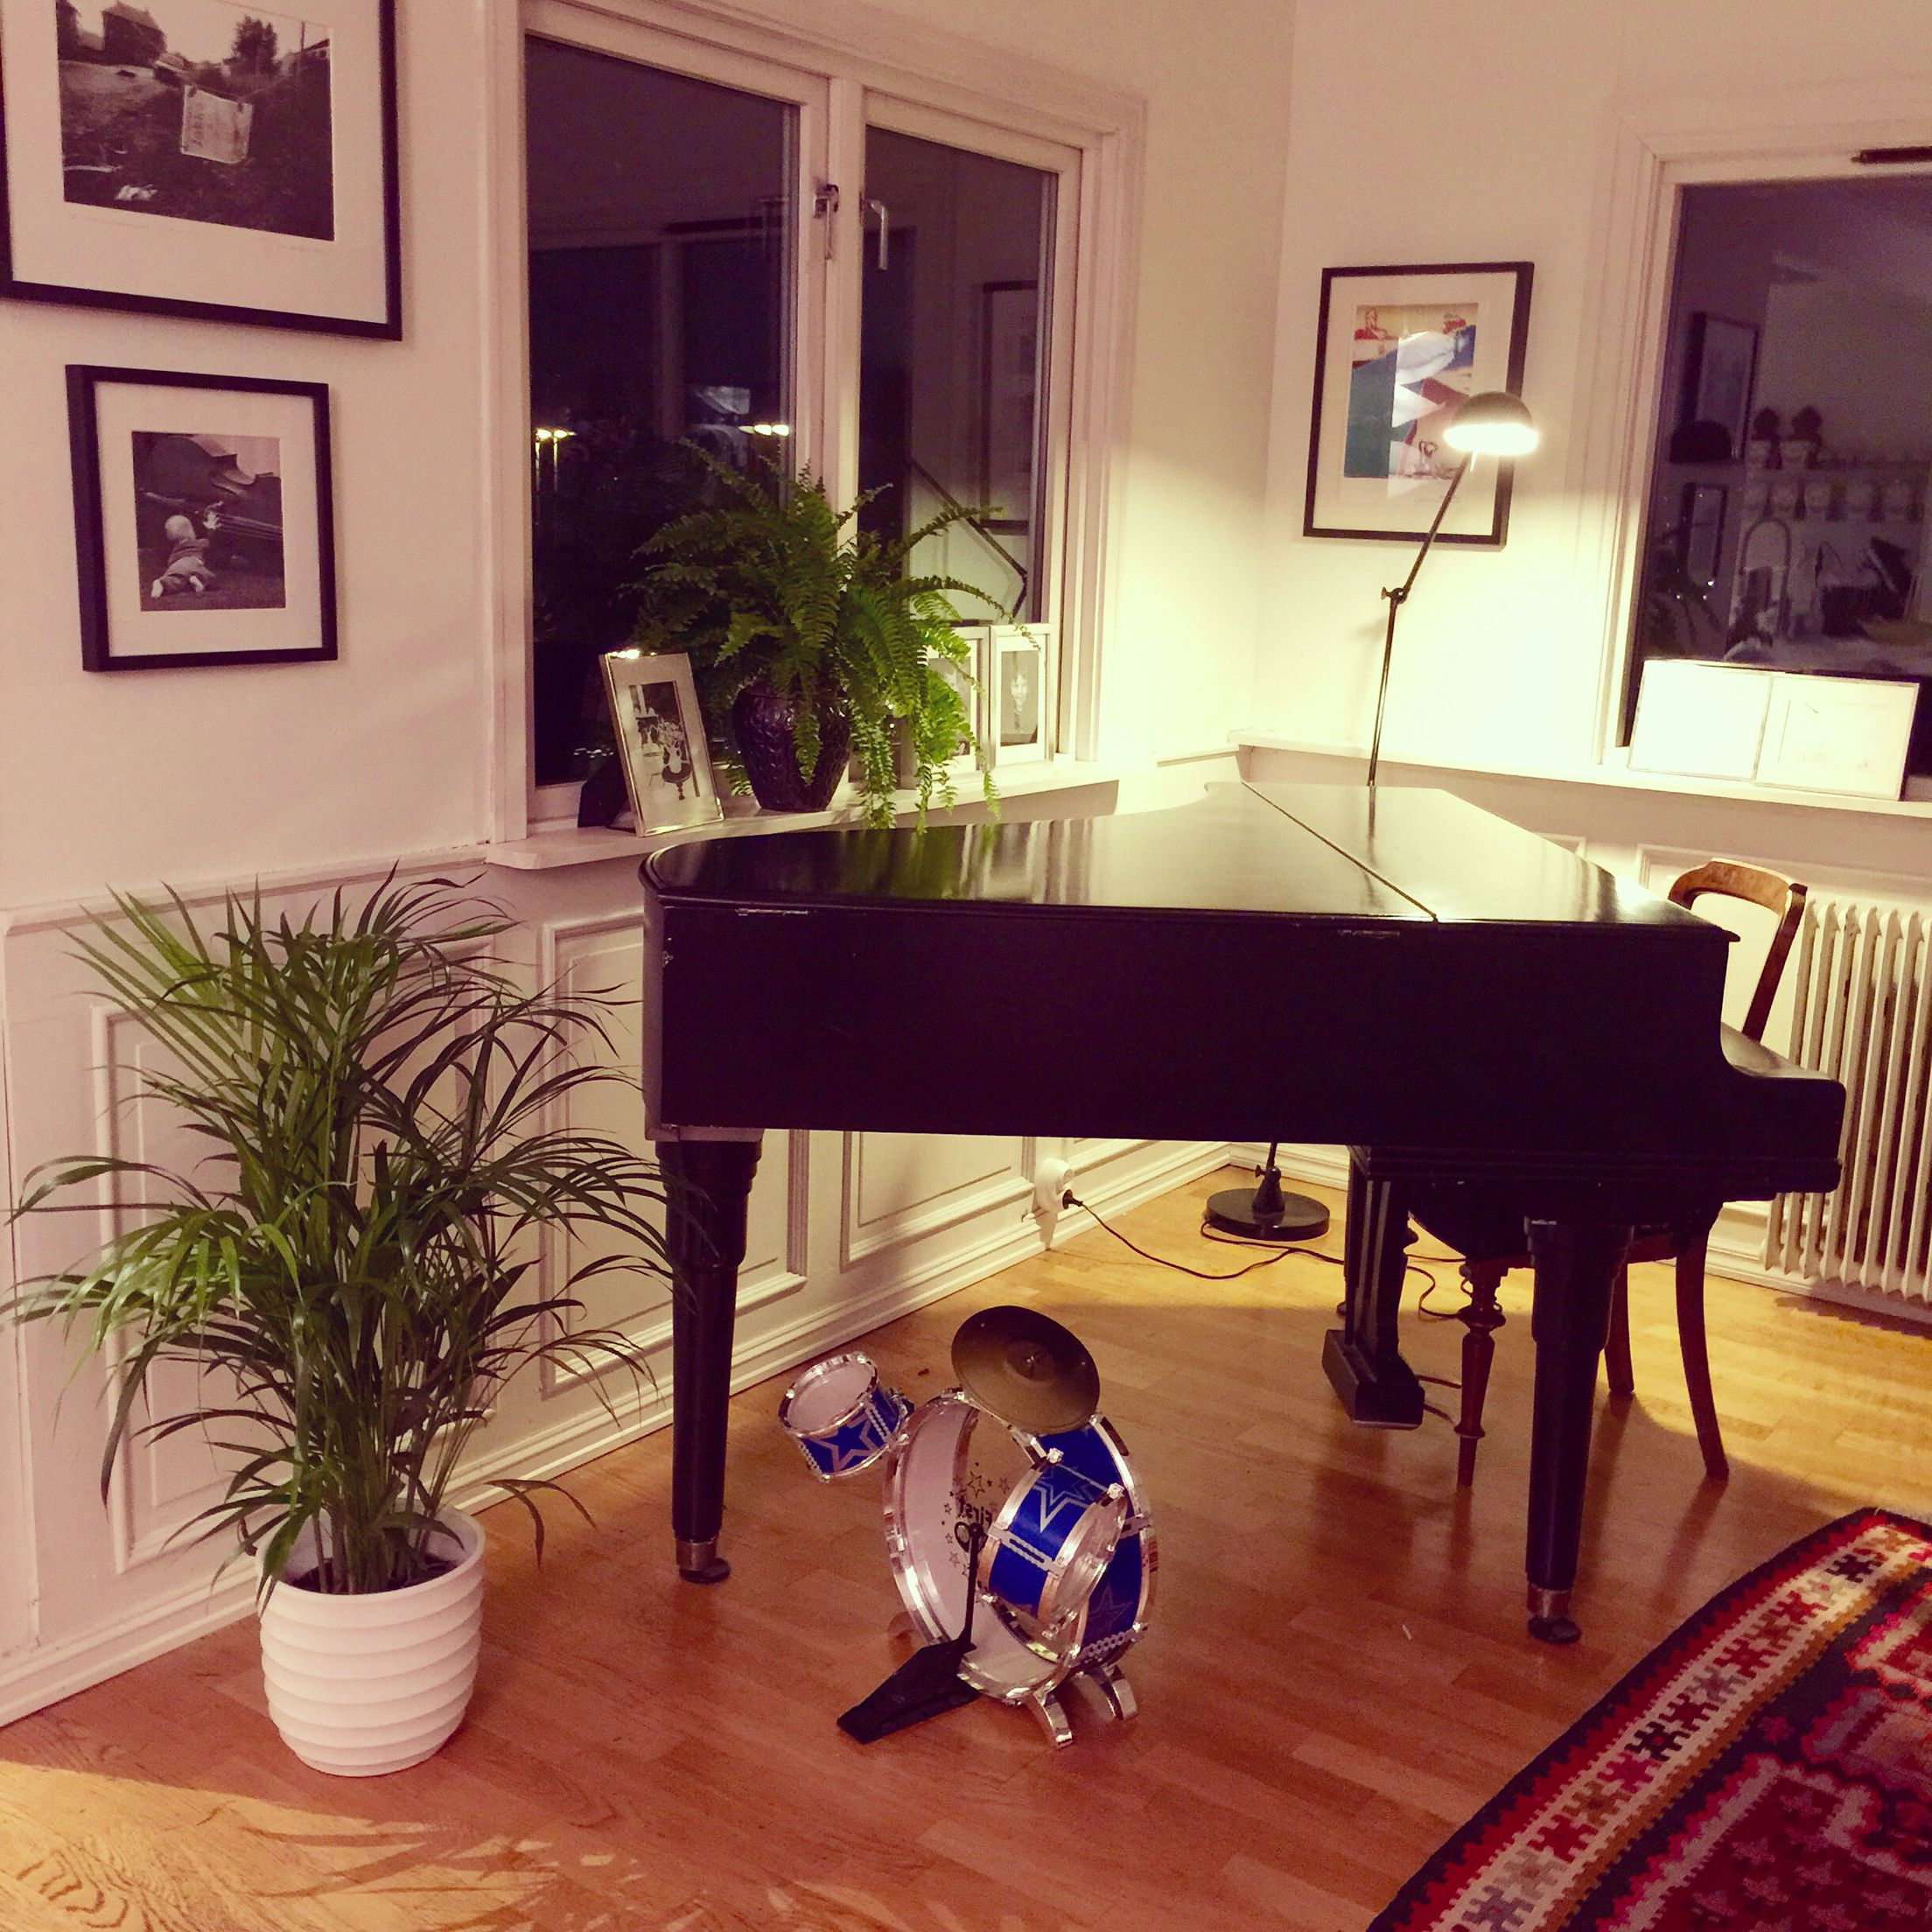 Kelim Ikea Our Grand Piano Ikea 20 Year Old Kelim Rug Our House In